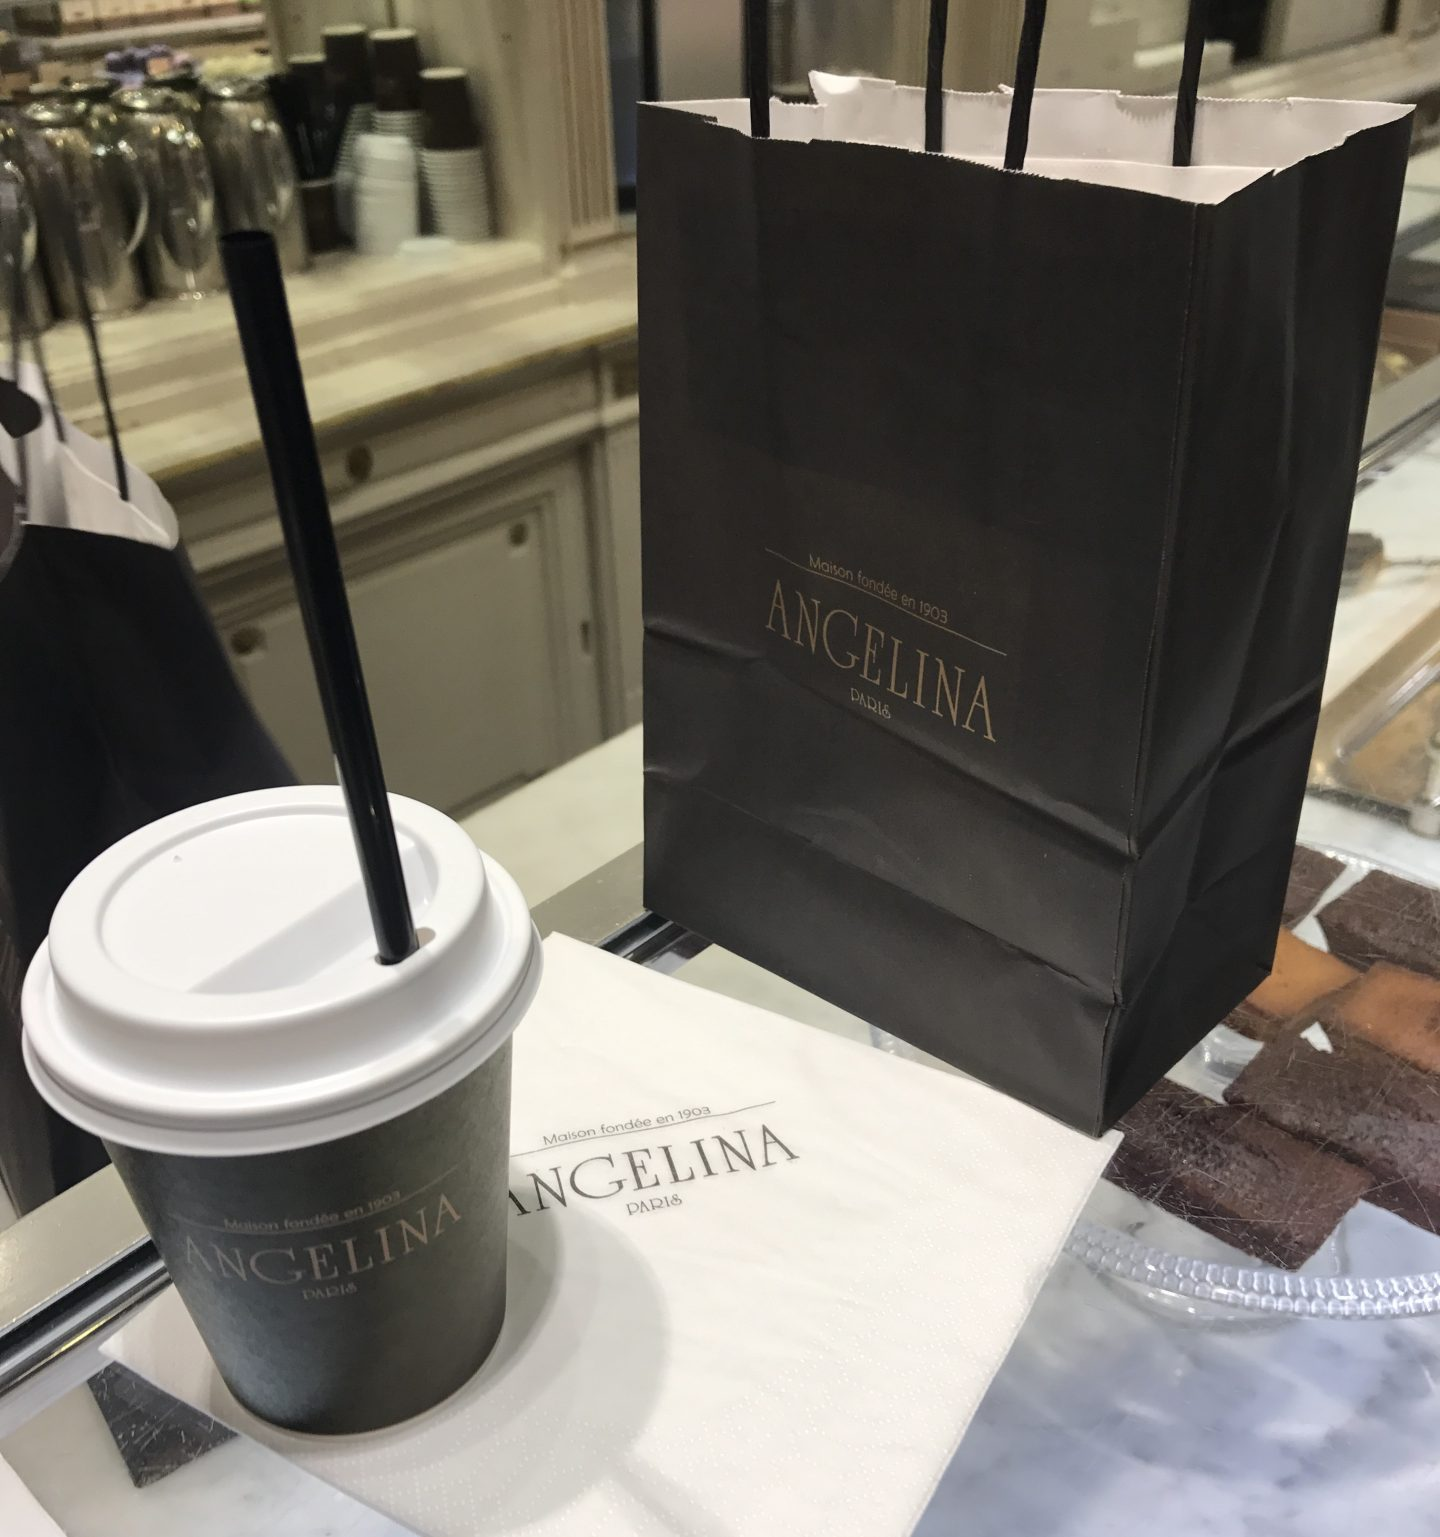 Angelina Treats in Paris